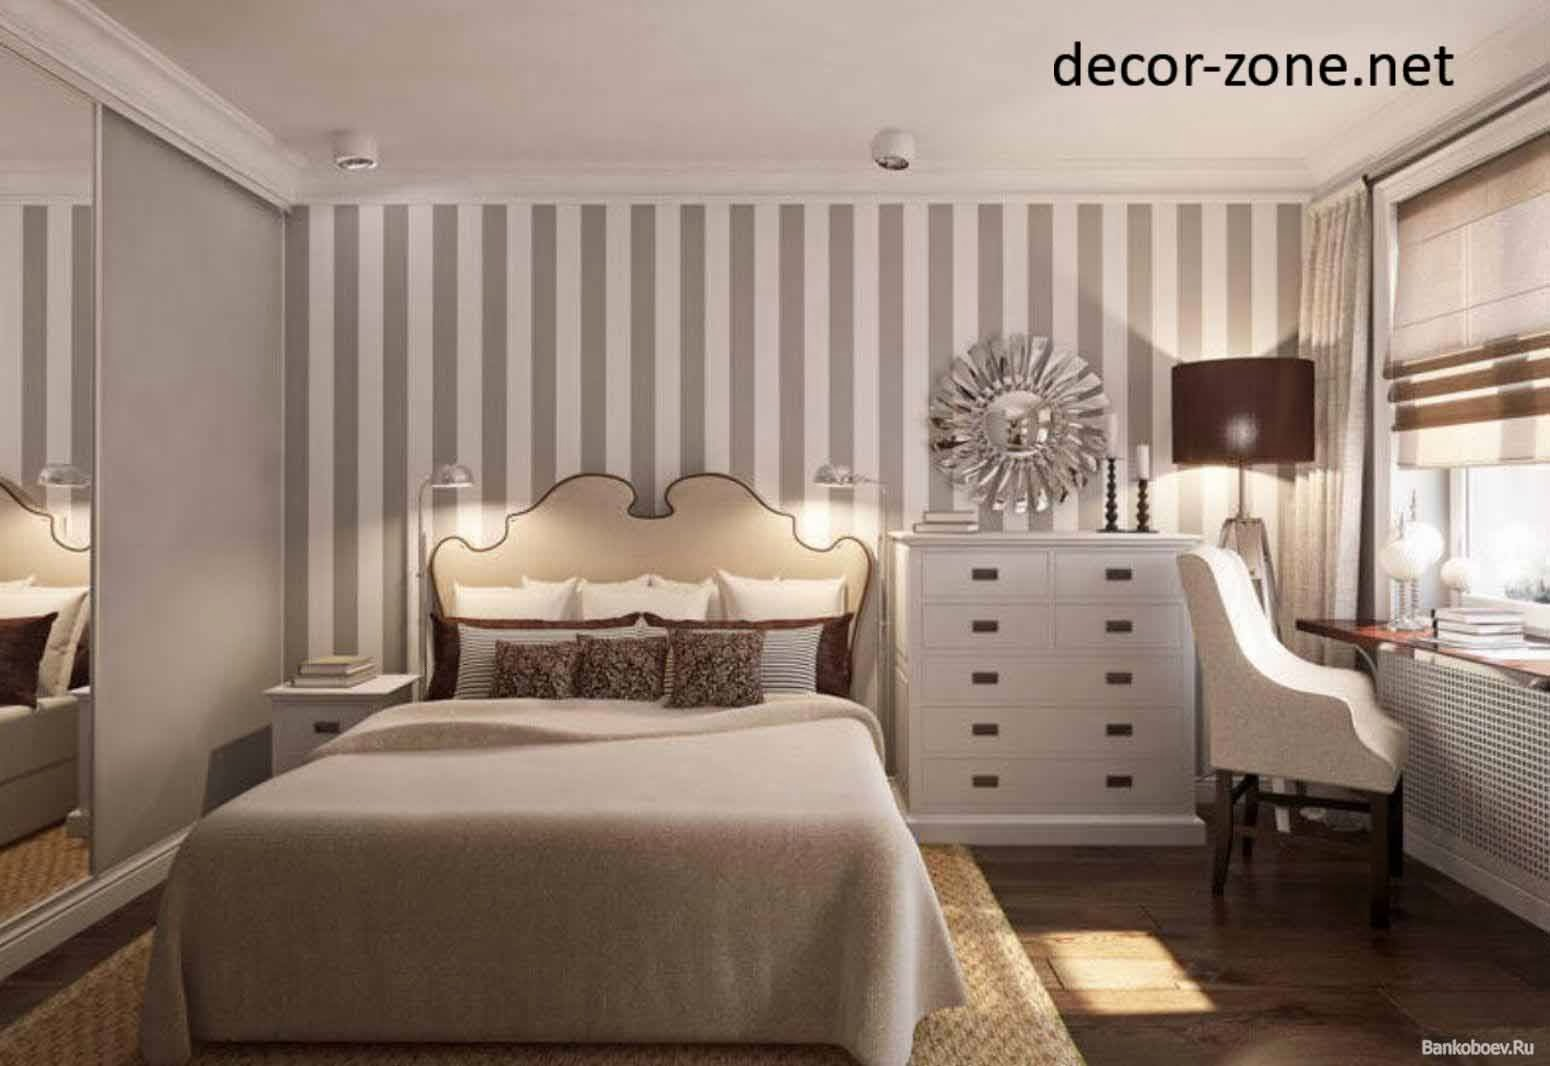 stripped bedroom wallpaper ideas, master bedroom wall decor